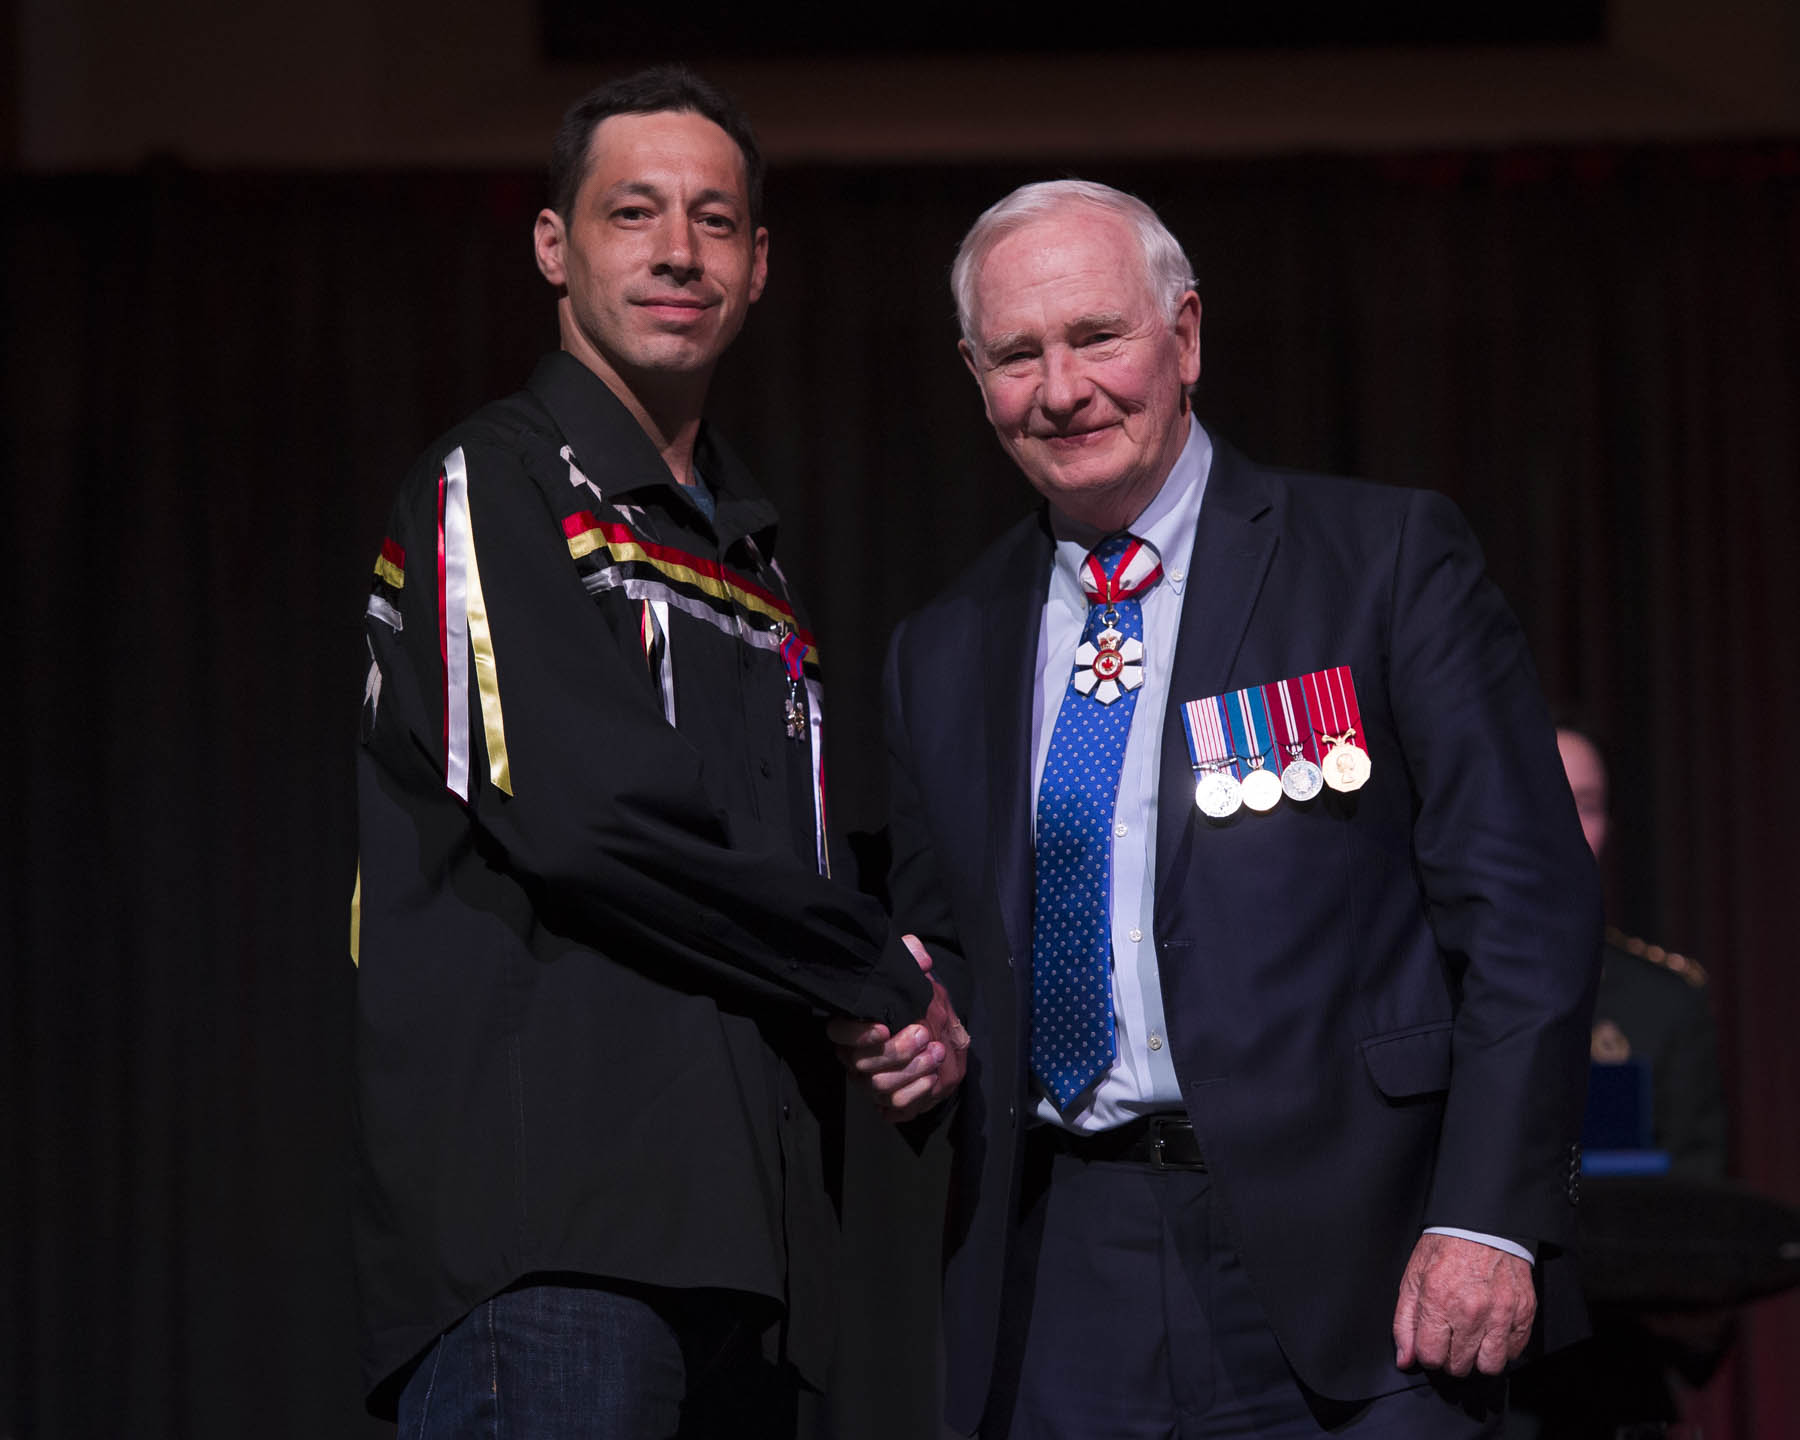 His Excellency presented the Star of Courage to Liam Bernard, S.C. On September 16, 2016, Liam Bernard rescued two people from a burning truck near Melford, Nova Scotia. Following a collision, the truck had rolled into a ditch, trapping the victims inside. As Mr. Bernard pulled the first victim to safety, a fire broke out under the truck's hood and quickly spread into the cab. Mr. Bernard climbed inside to try and free the driver, but was forced to retreat due to the heavy smoke. Undeterred, Mr. Bernard returned to the vehicle and, with the help of bystanders, pulled the victim over to the passenger side and out of harm's way.